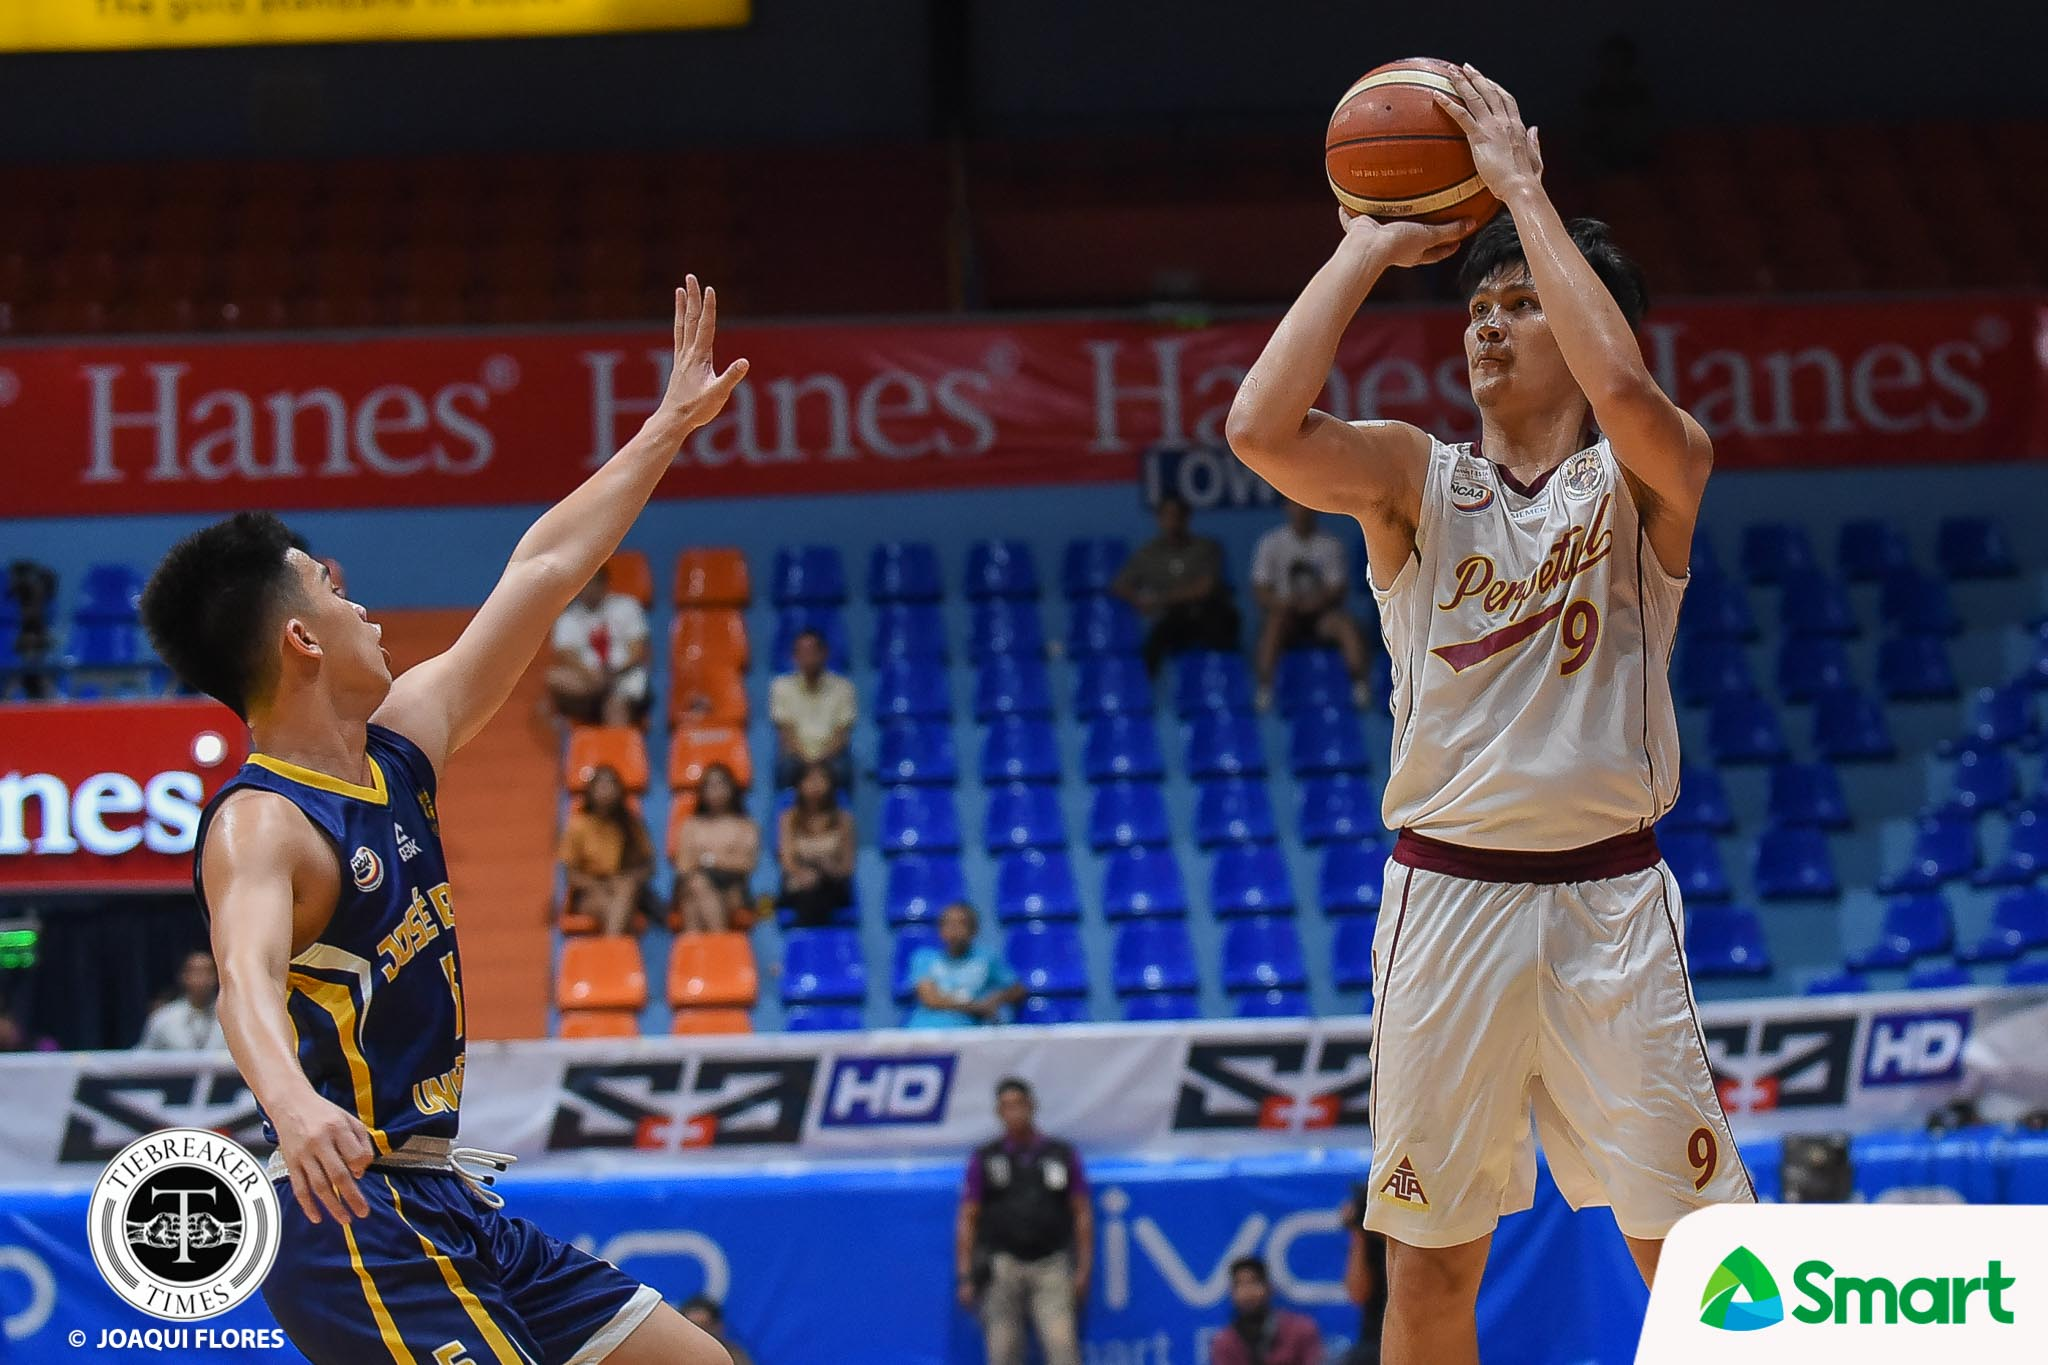 Tiebreaker Times AJ Coronel leads Perpetual past also-ran JRU for share of fourth Basketball JRU NCAA News UPHSD  Vergel Meneses Prince Eze Perpetual Seniors Basketball NCAA Season 94 Seniors Basketball NCAA Season 94 Leo Esguerra JRU Seniors Basketball Jielo Razo Jed Mendoza Frankie Lim AJ Coronel